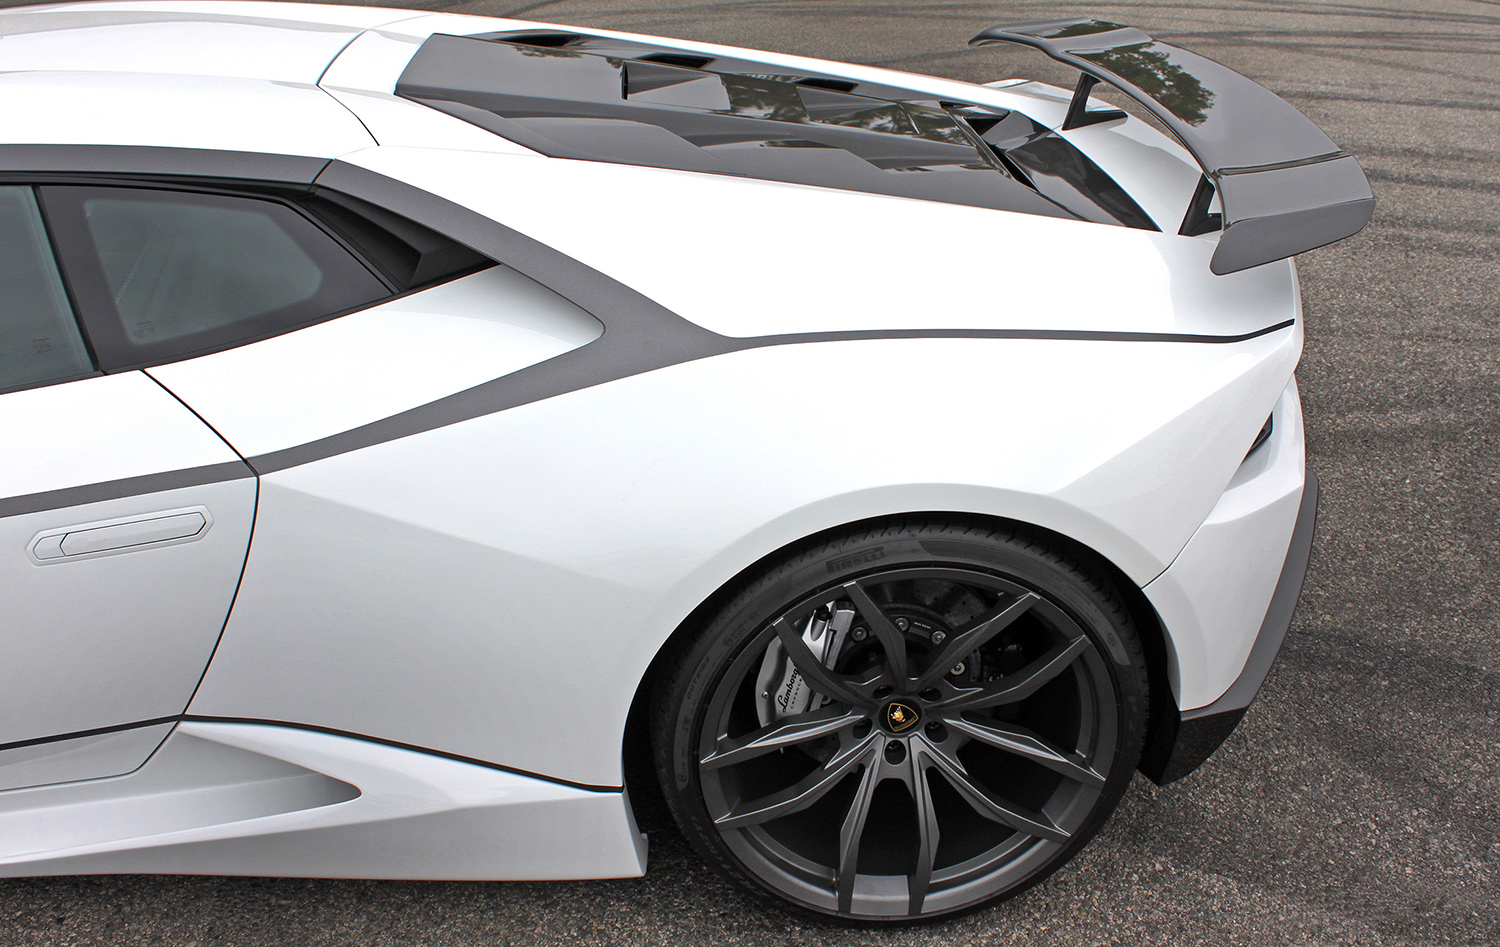 Huracan N-Largo (Widebody)